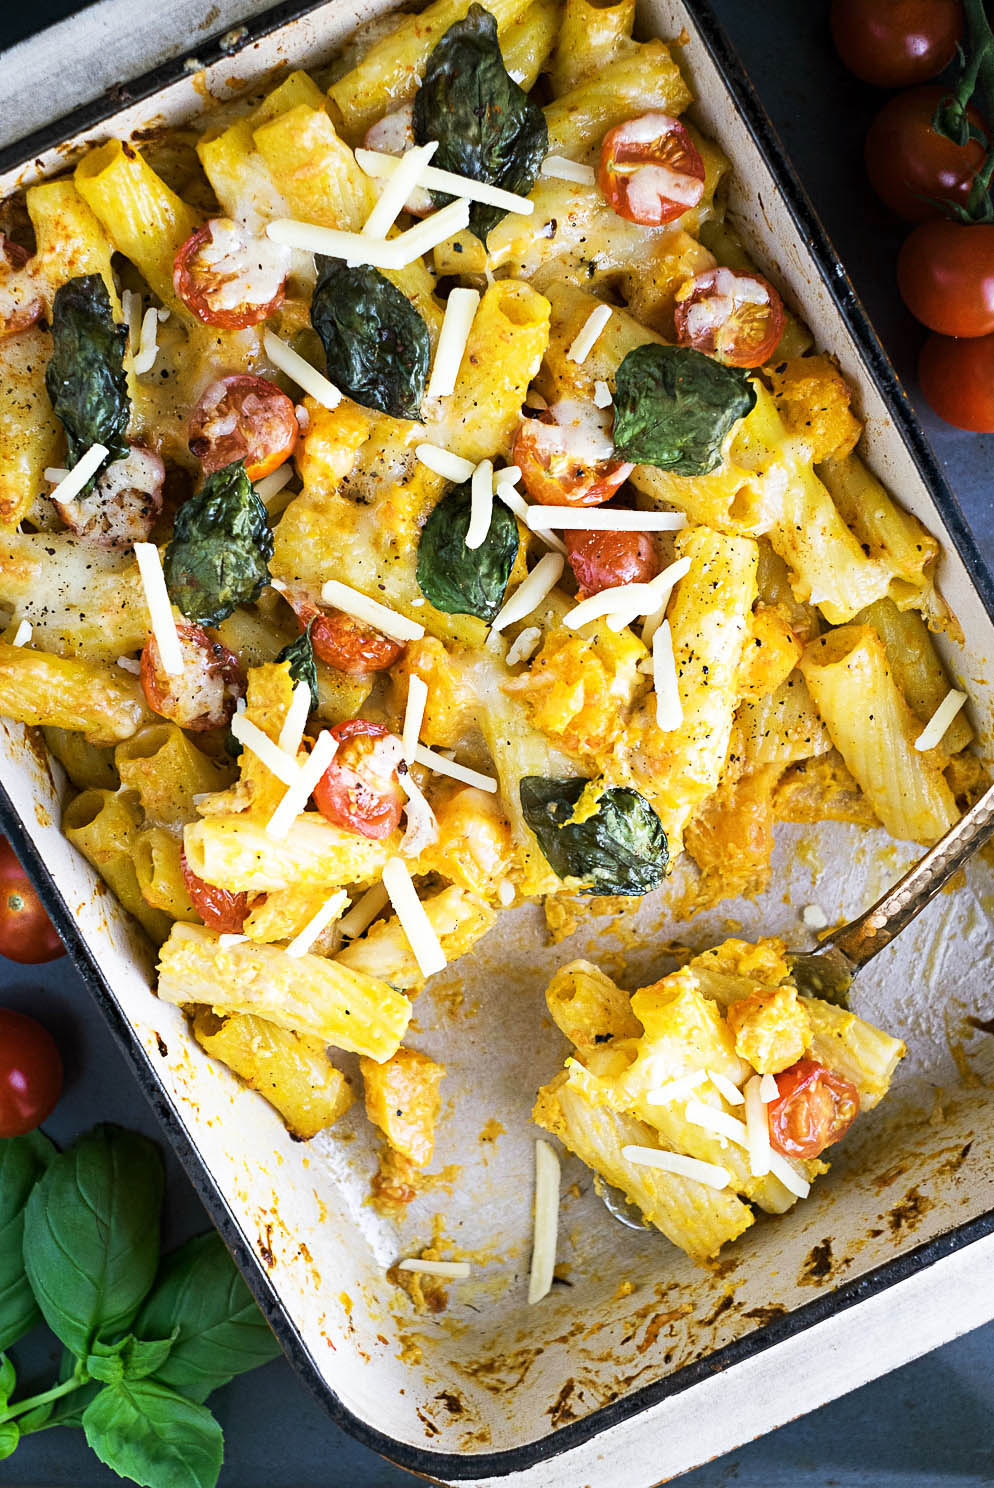 Butternut Squash, Tomato and Cheese Pasta Bake with Arla Lactofree Cheddar and Cream